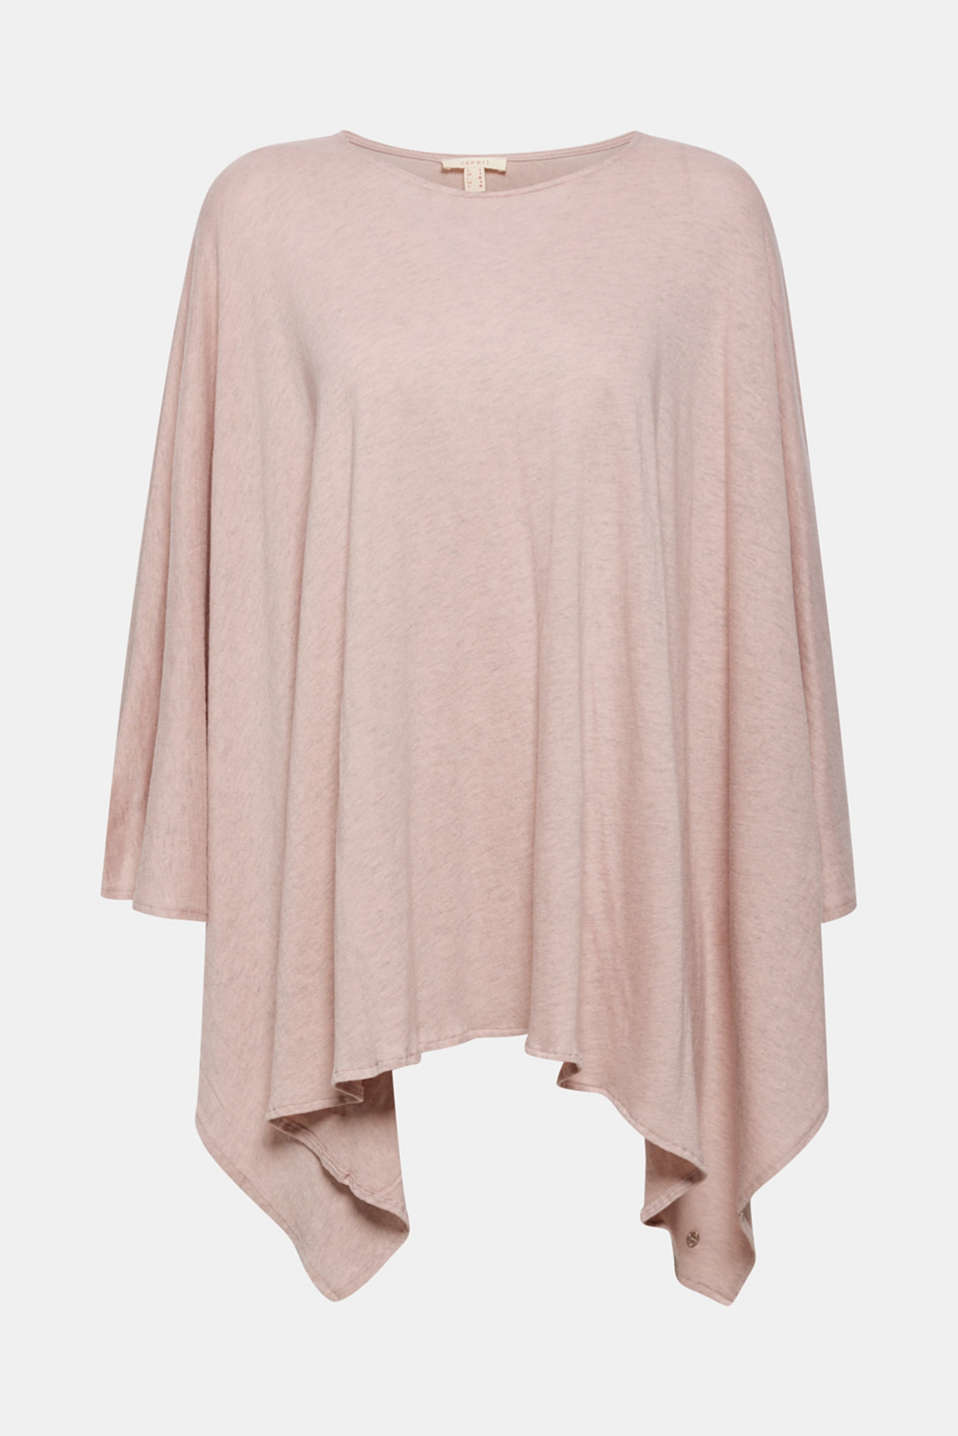 Esprit - Melange jersey poncho made of blended cotton